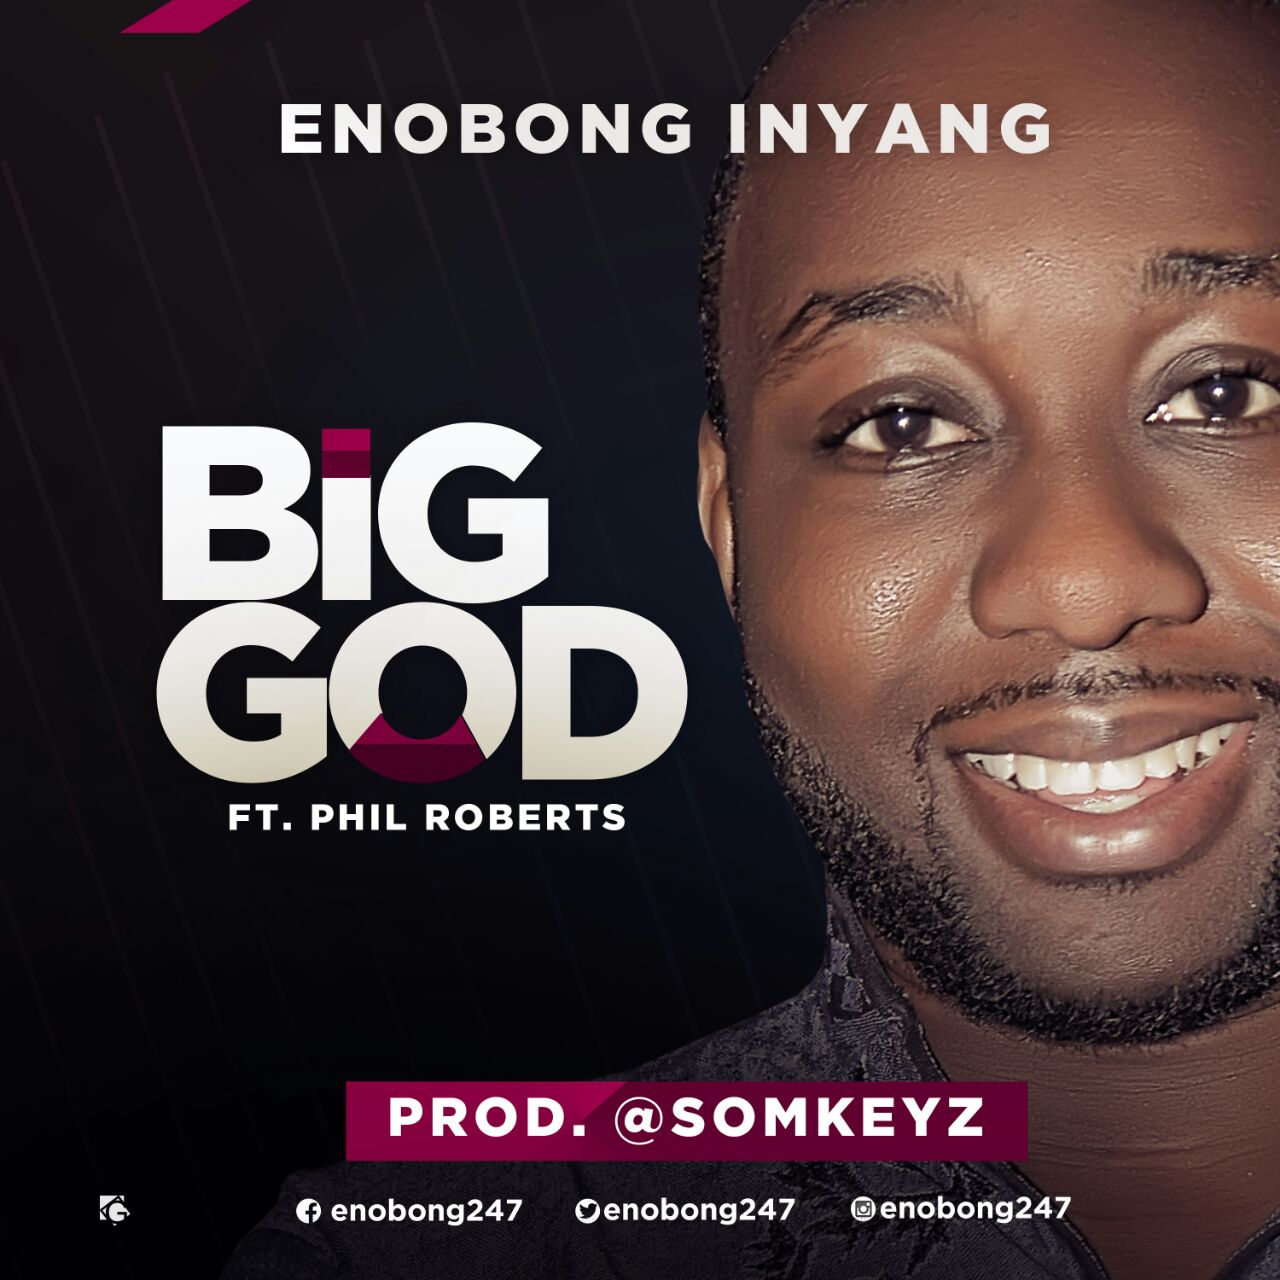 MUSIC DOWNLOAD: Enobong Inyang - Big God [Chukwu Ebuka] Ft